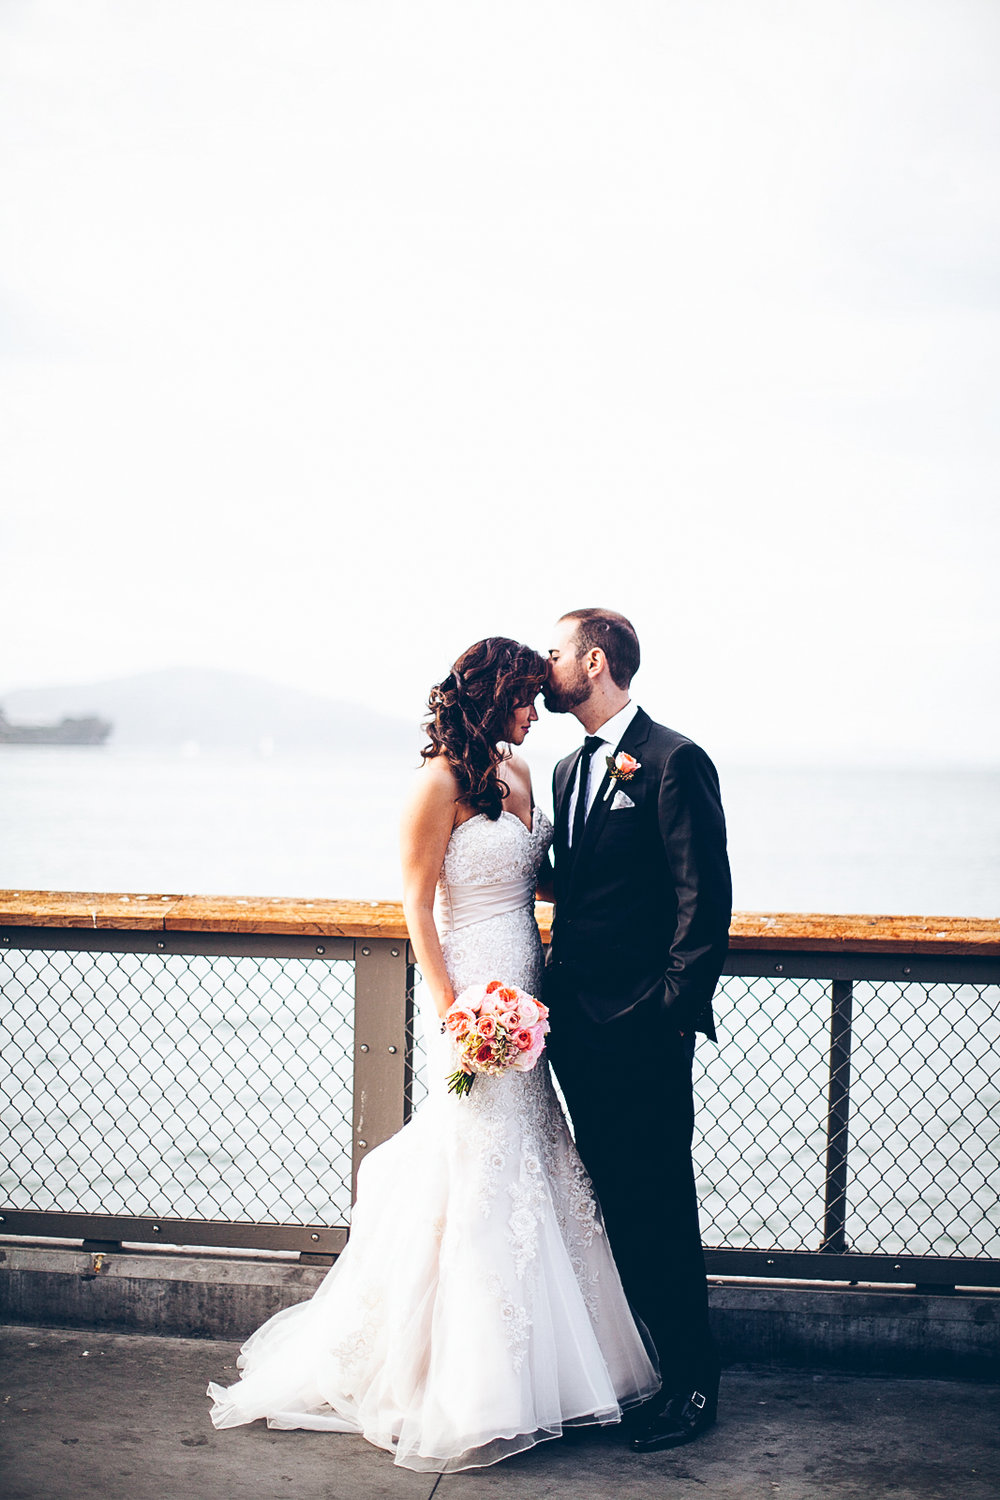 San_francisco_city_hall_wedding_photography_meegan_travis_ebony_siovhan_bokeh_photography_83.jpg